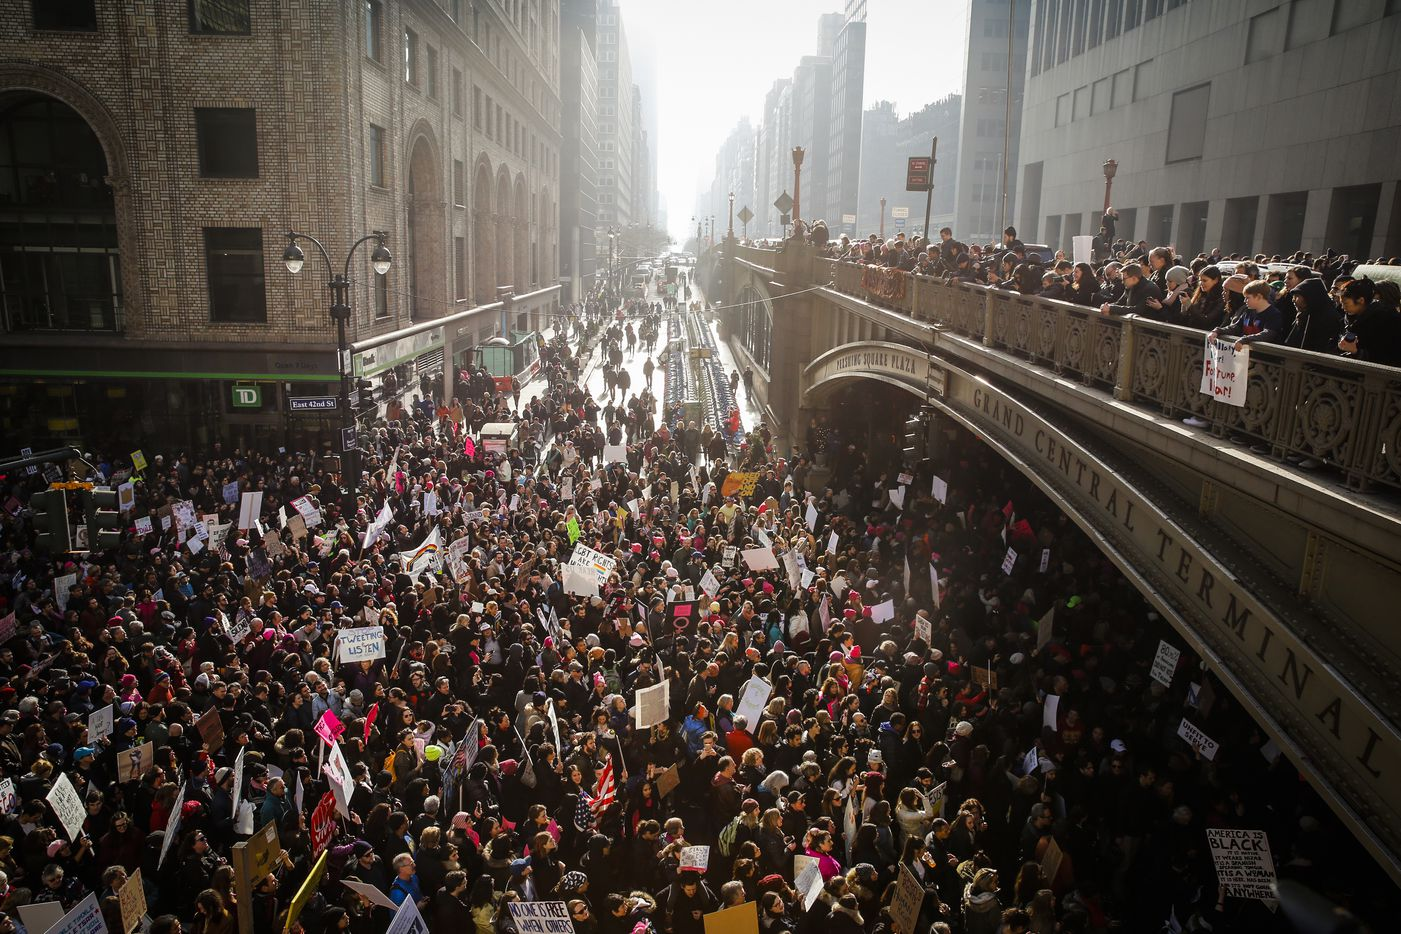 Demonstrators walk down 42nd Street toward Grand Central Terminal during the Women's March on New York, Jan. 21, 2017.